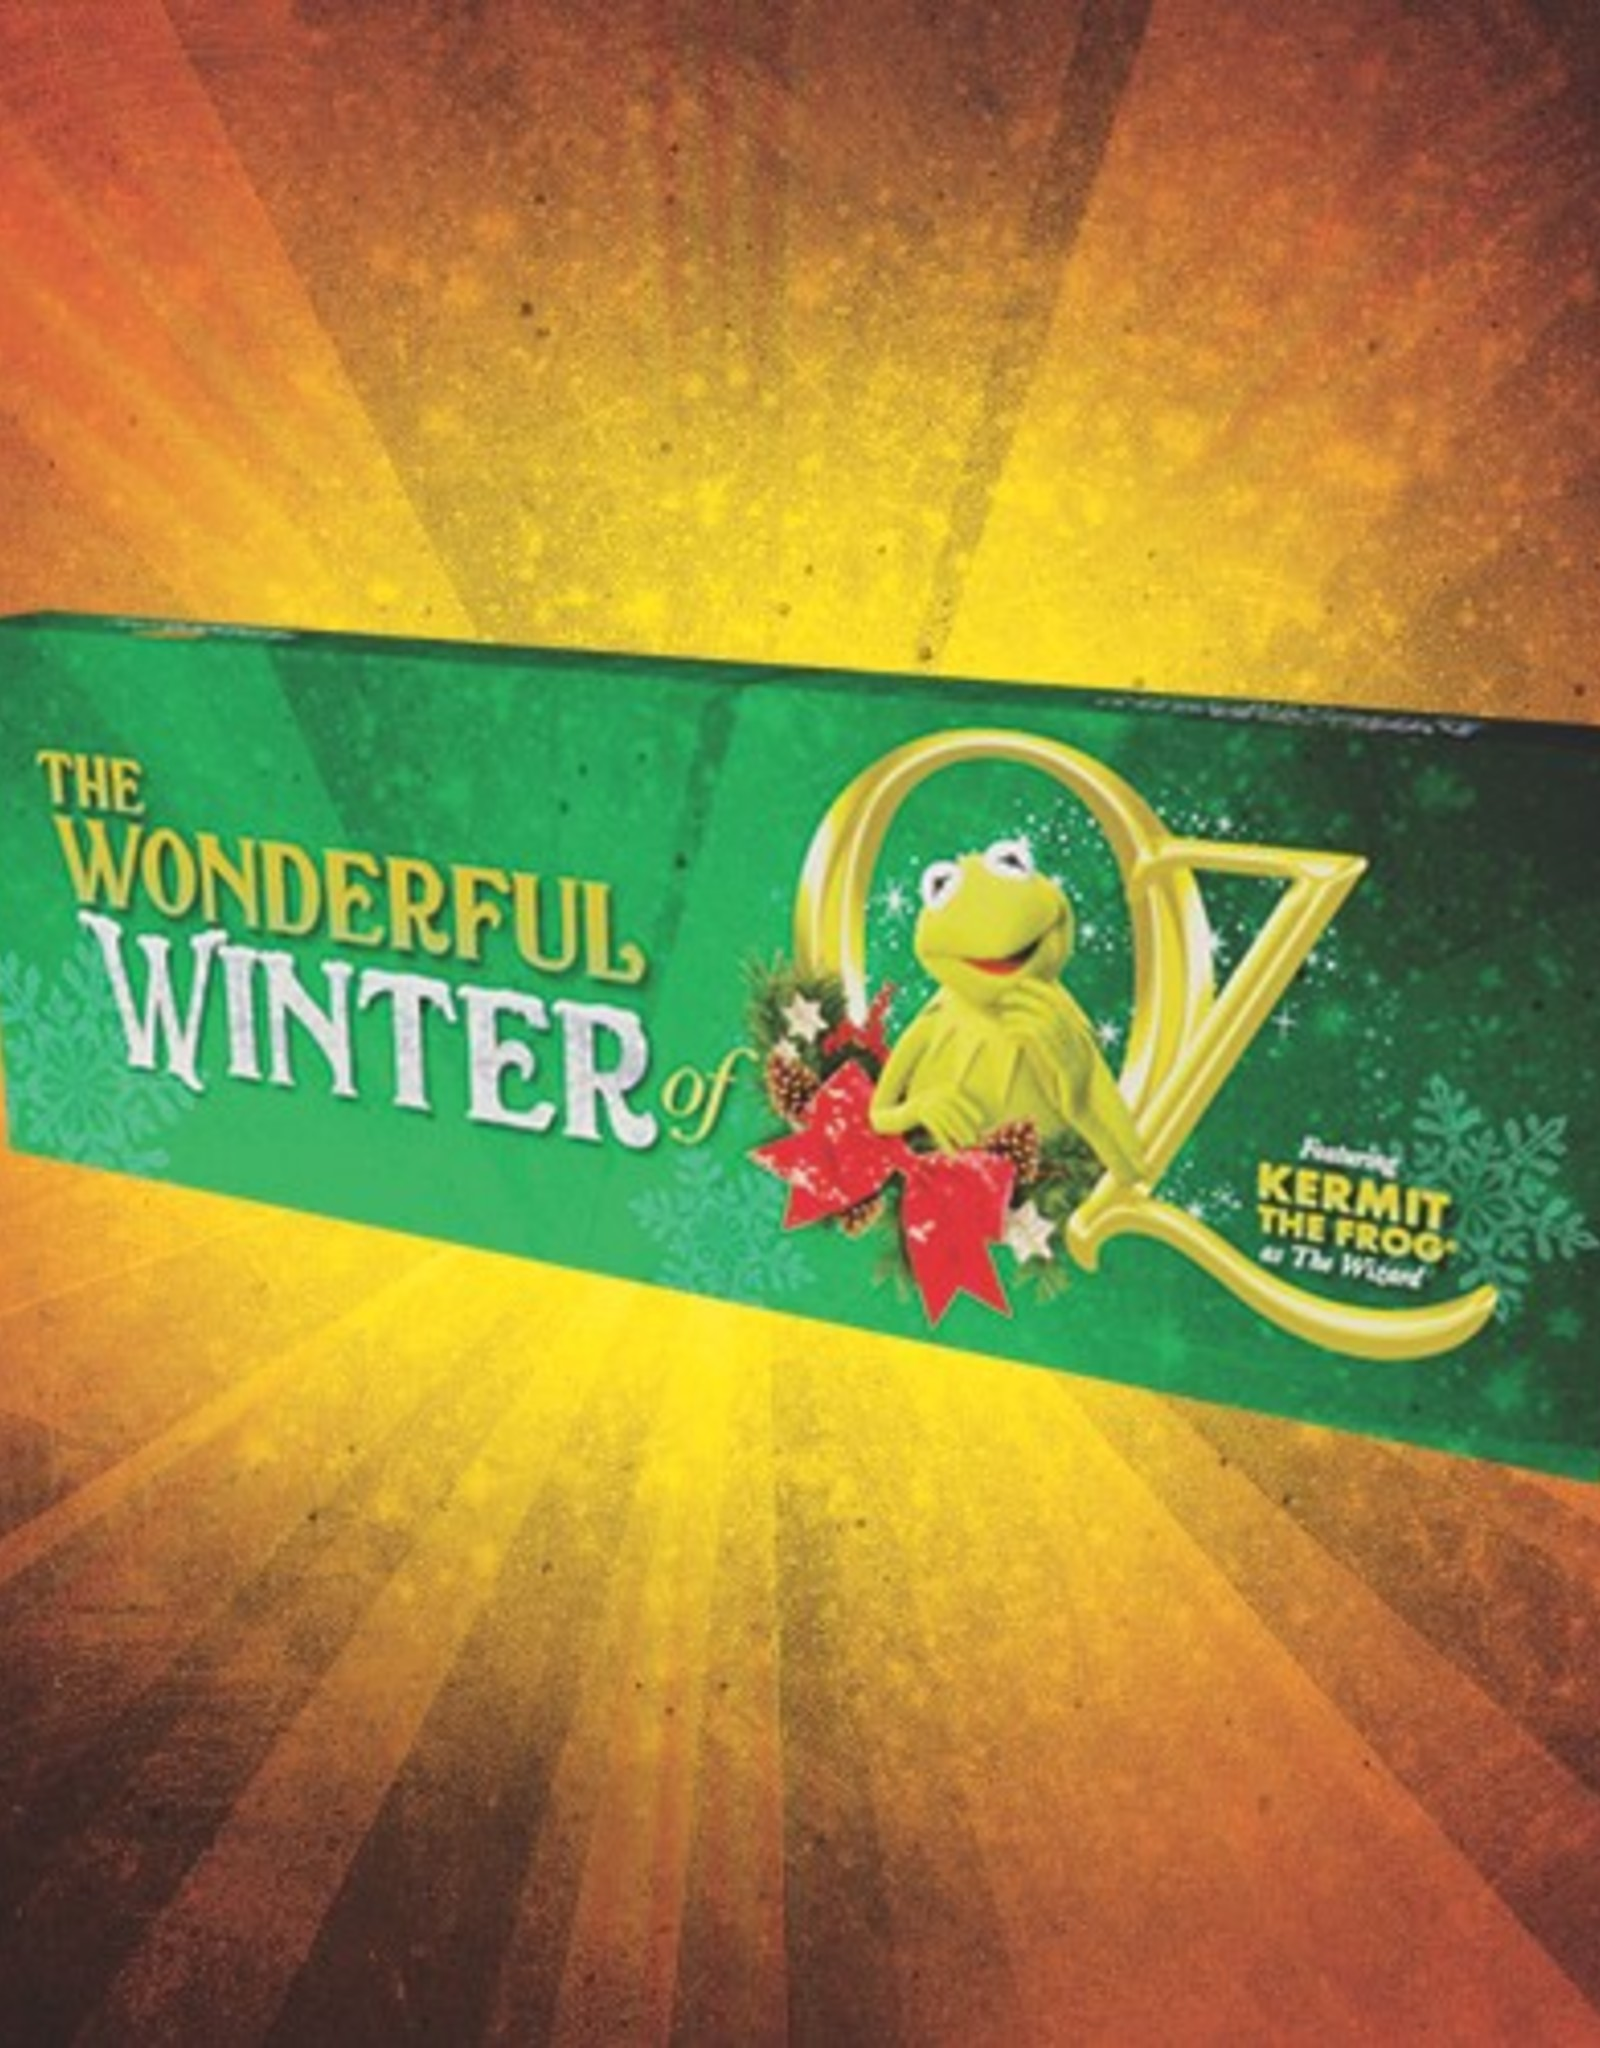 The Wonderful Winter of Oz Somewhere Over the Rainbow Bar